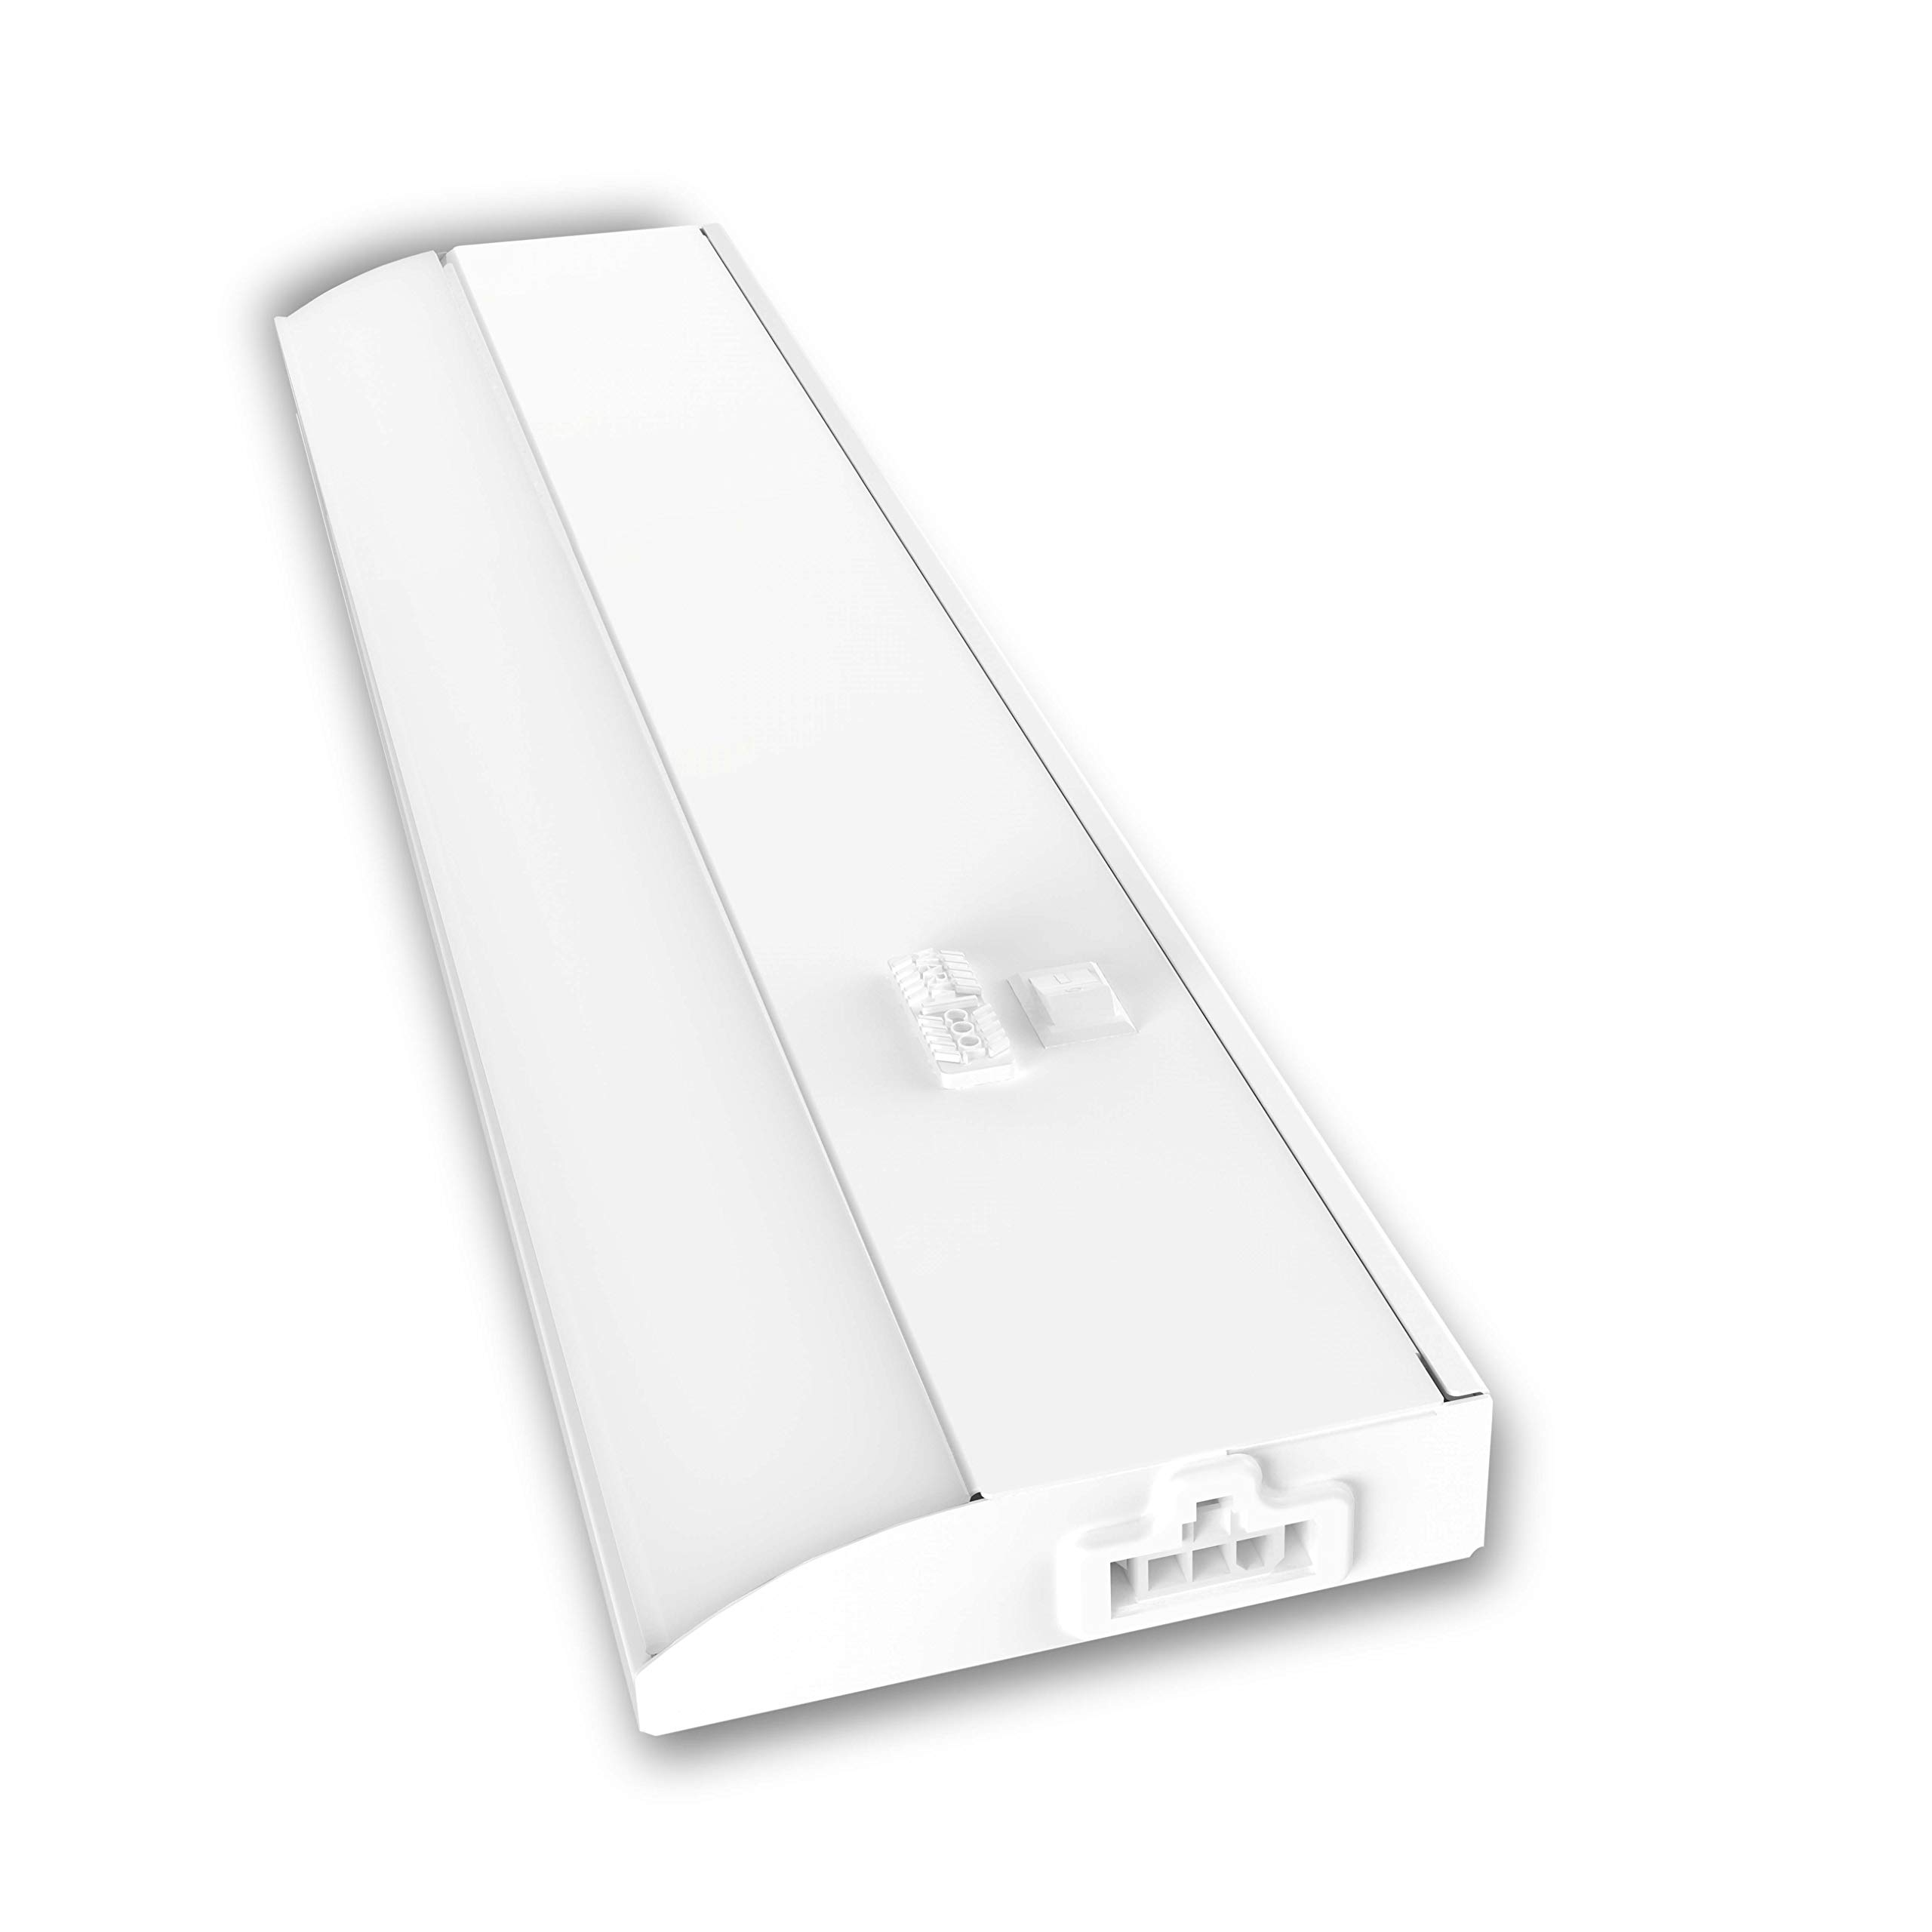 Good Earth Lighting 12-inch LED Slim Direct Wire Linking Light Bar - 2700K/3400K/4000K White Color Selectable - 50,000 Hours Lamp Life - Dimmable - Energy Star - White by Good Earth Lighting